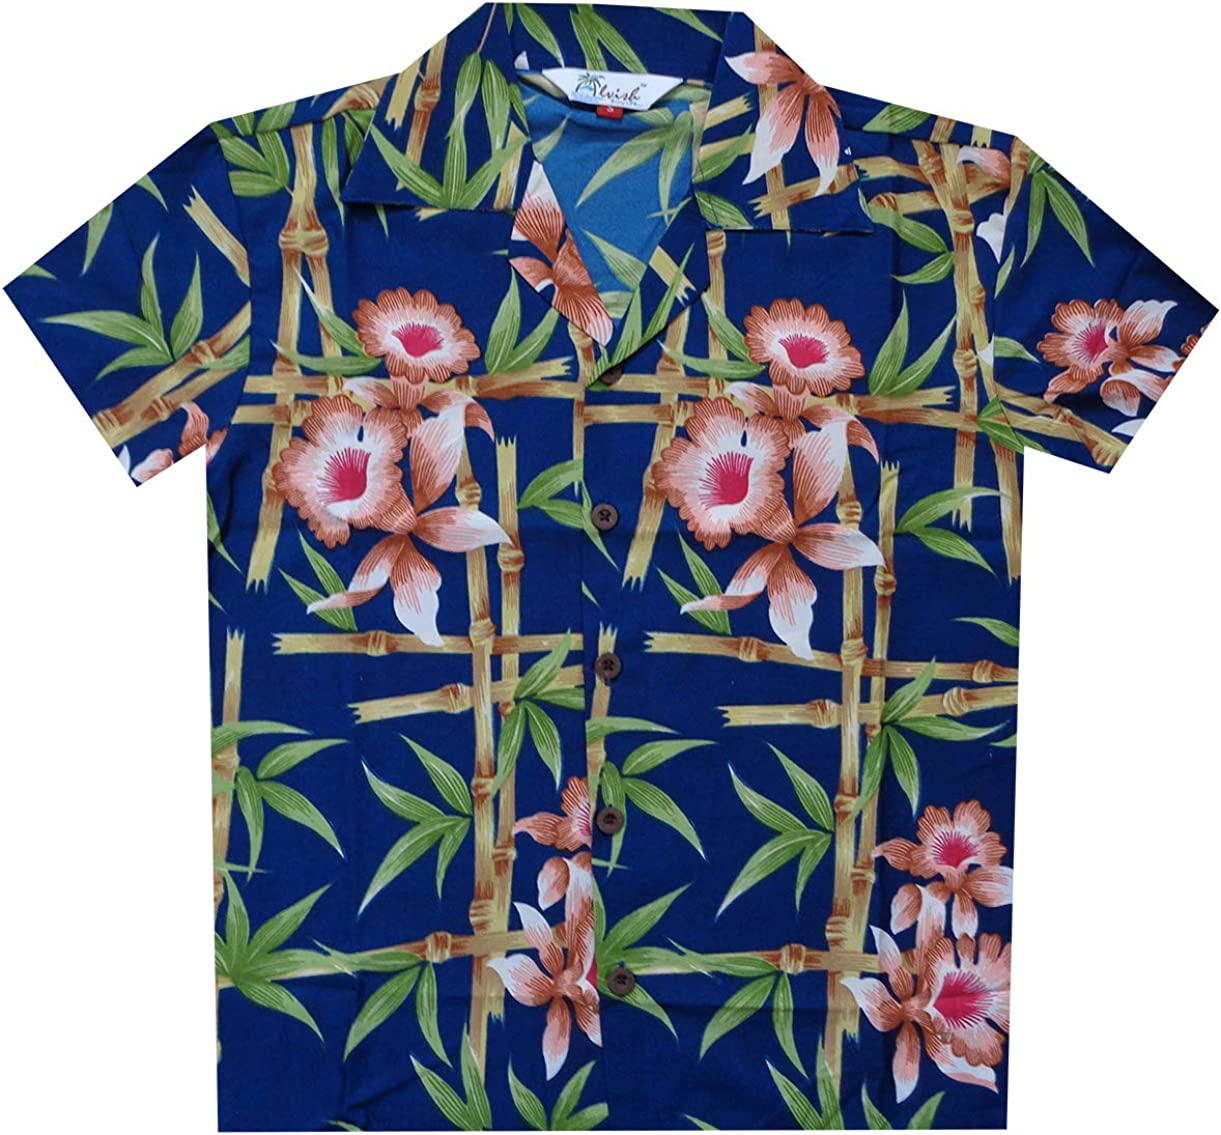 BOY/'S LOUD HAWAIIAN SHIRT BLUE WITH PARROTS SIZE 10-16 summer holiday party new